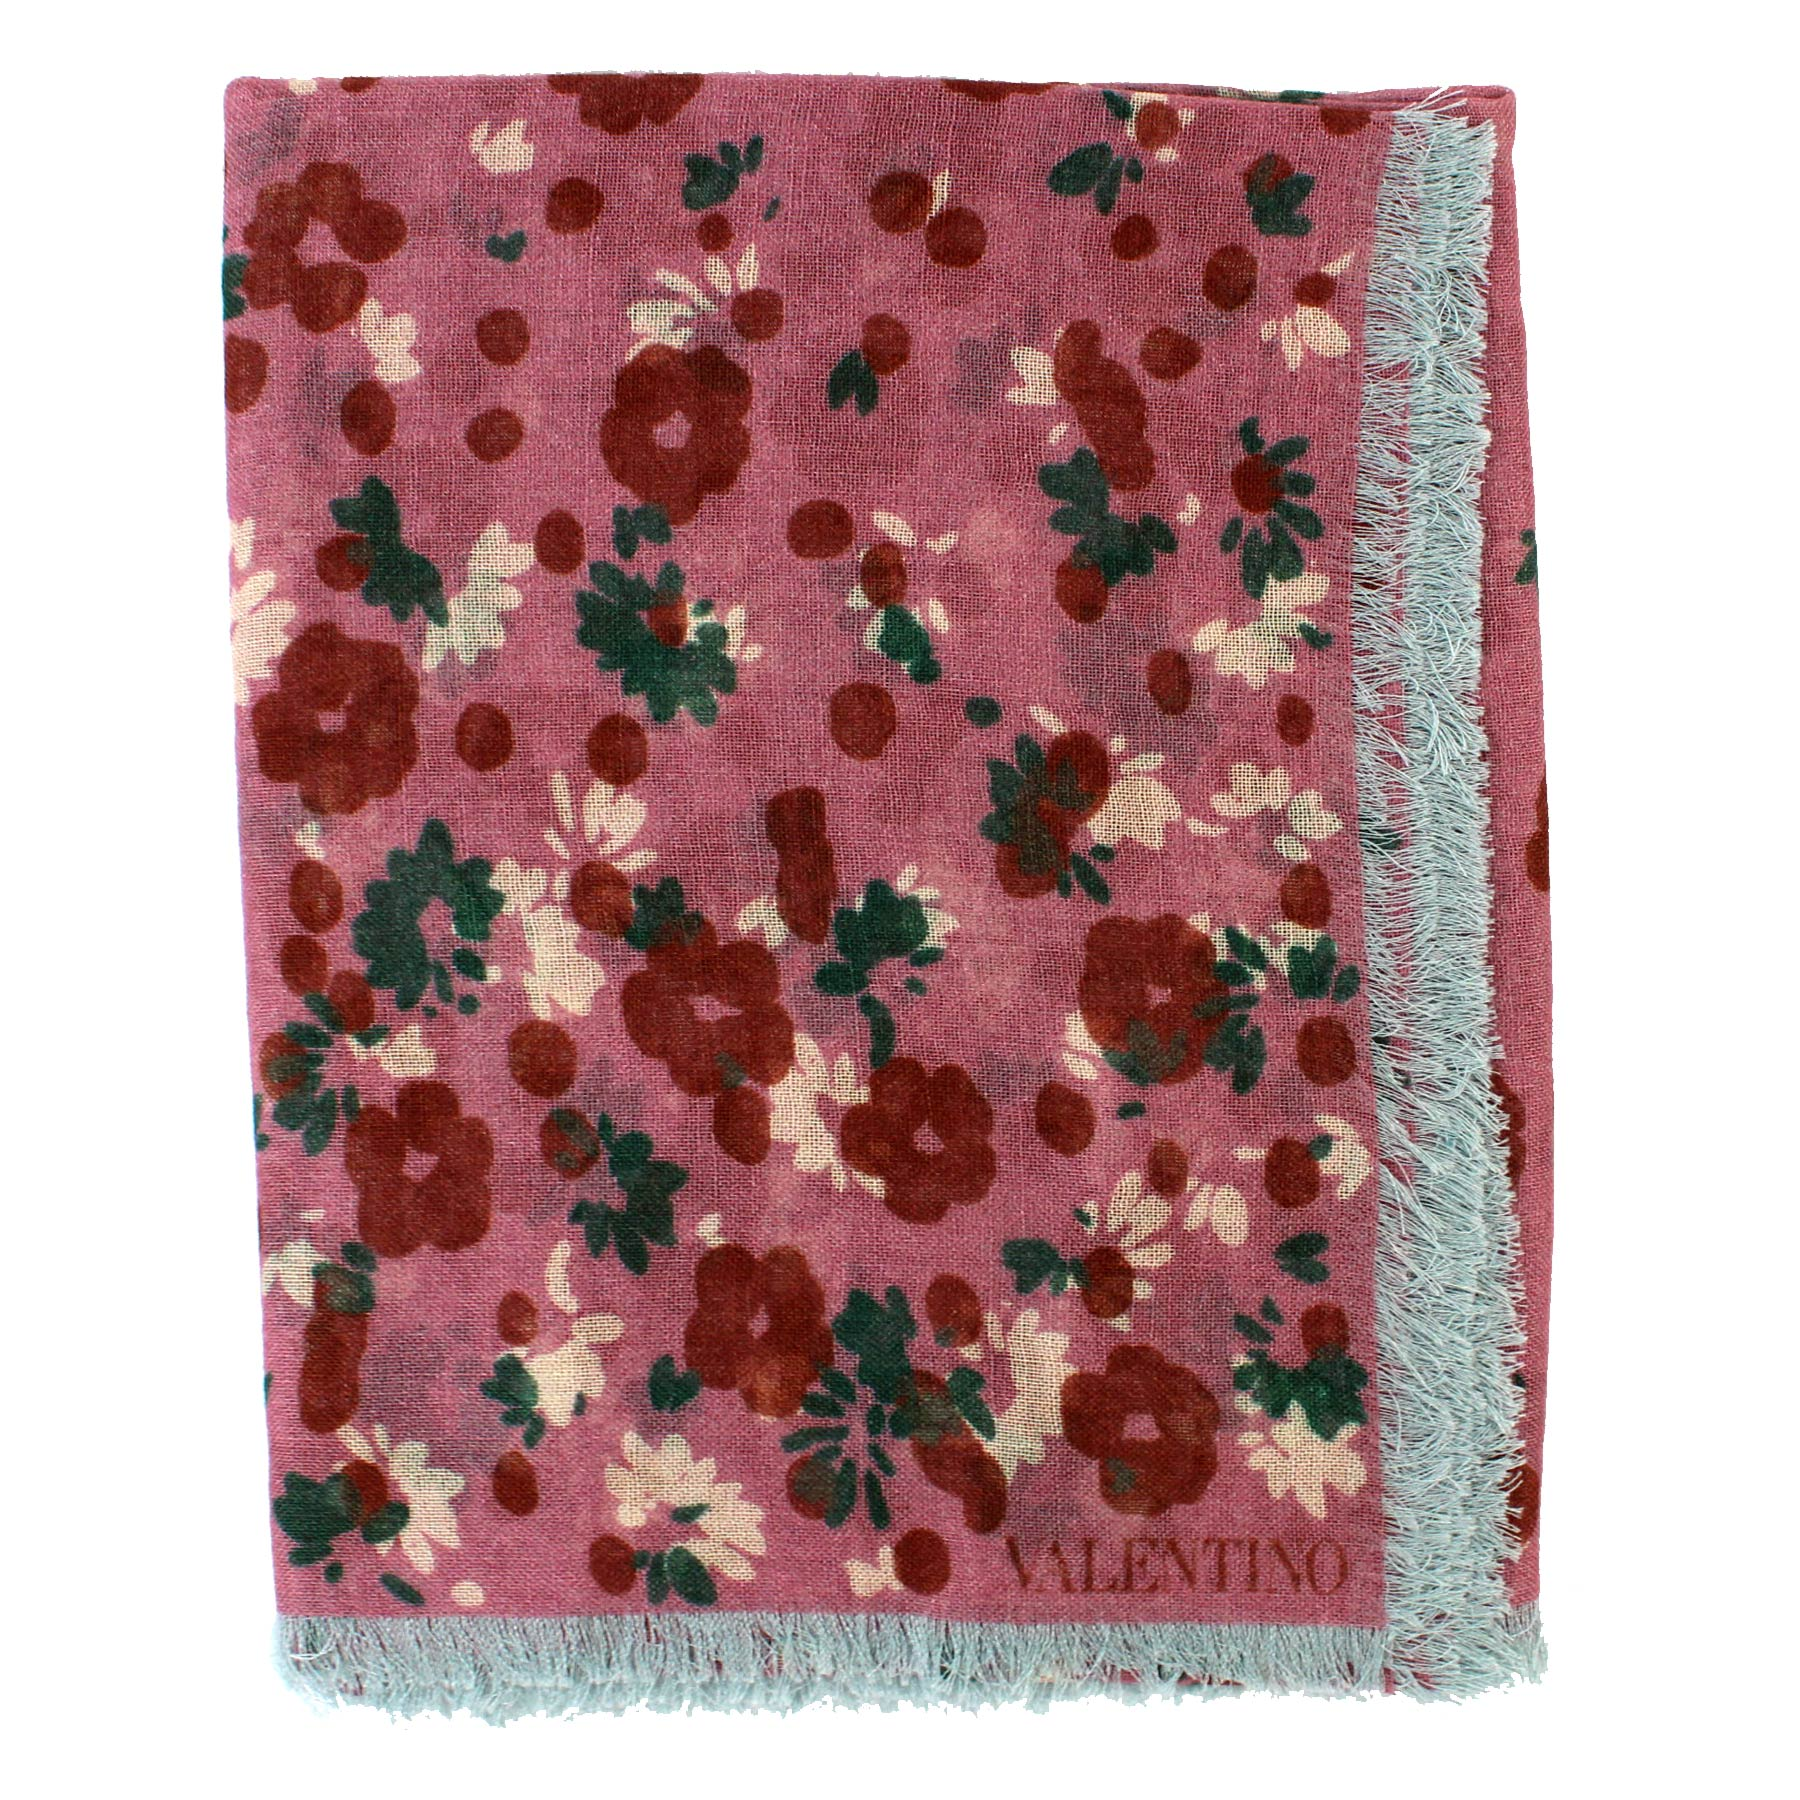 Valentino Scarf Pink Gray Floral